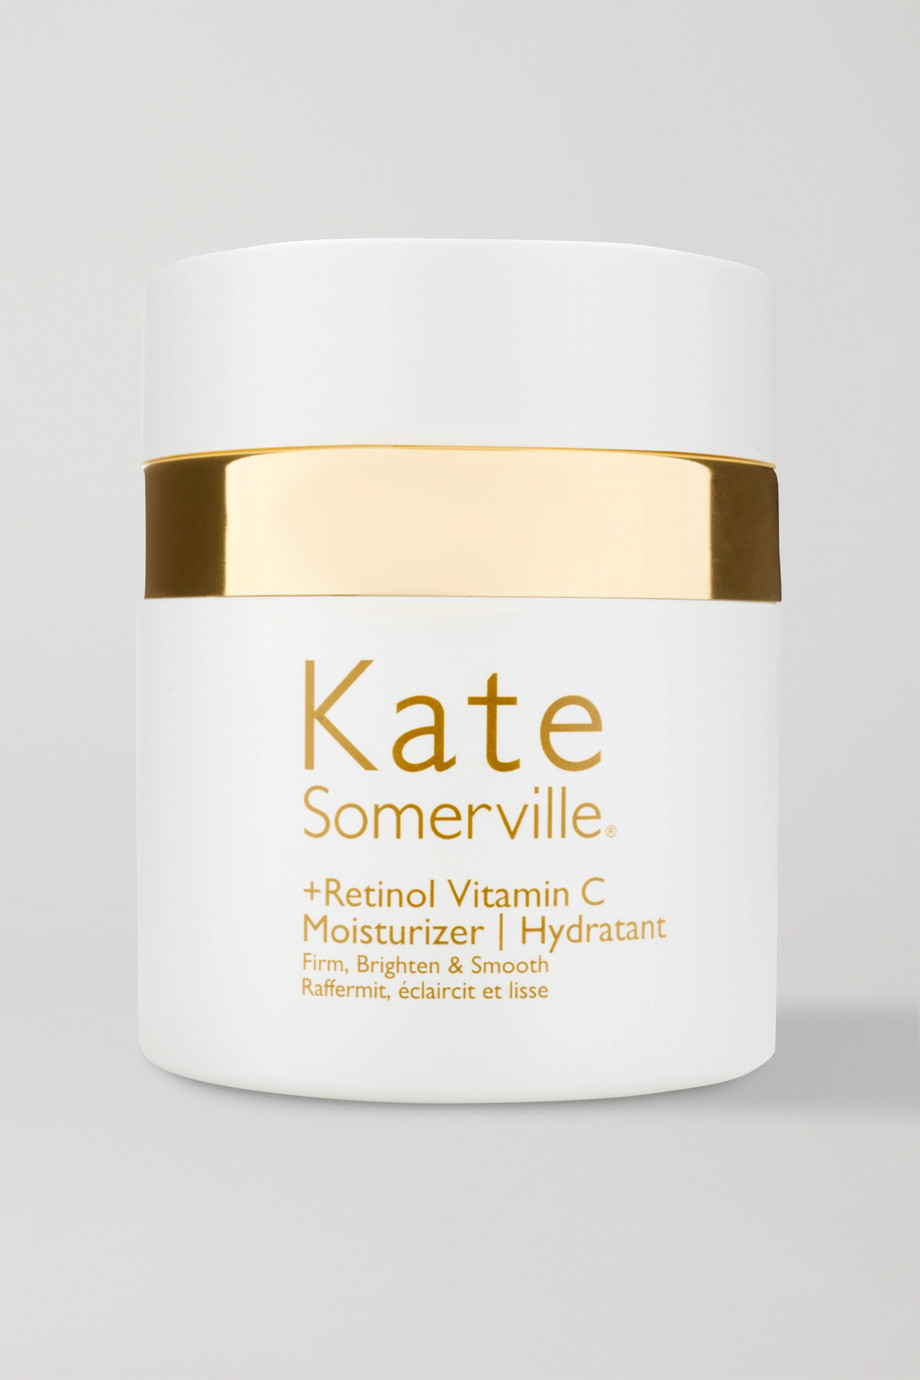 Kate Somerville + Retinol Vitamin C Moisturizer, 50ml